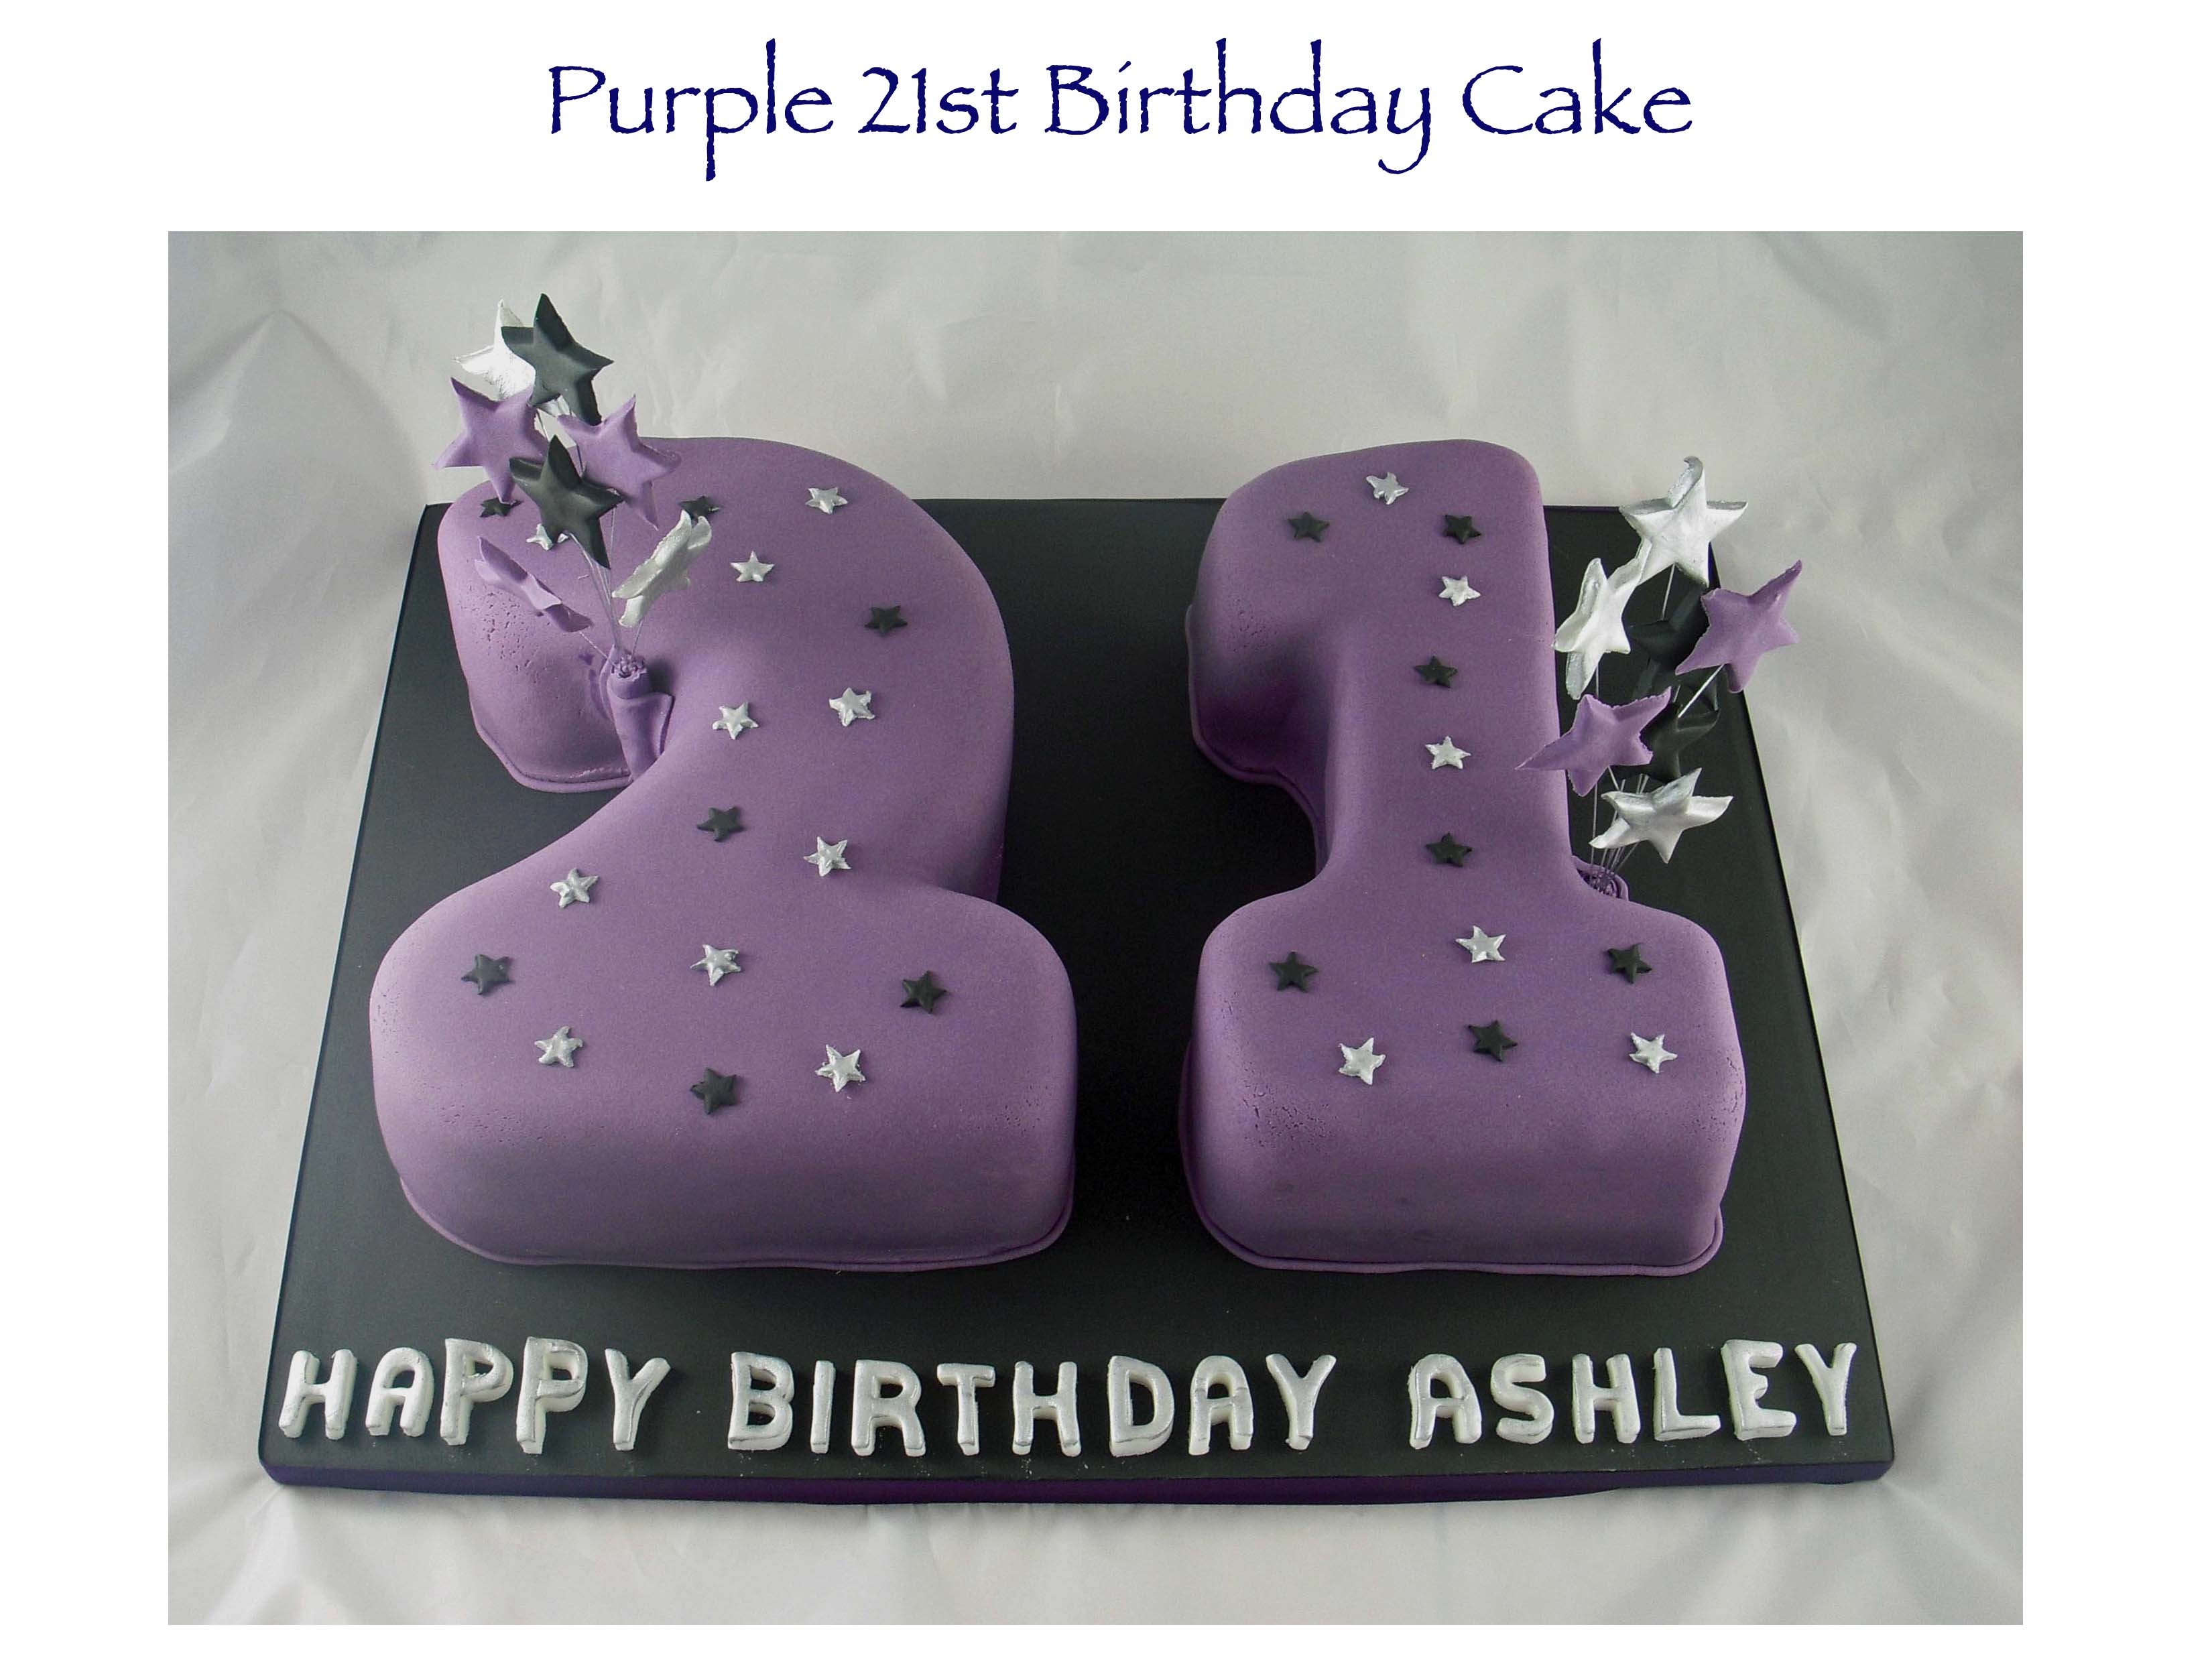 Purple 21st Birthday Cake